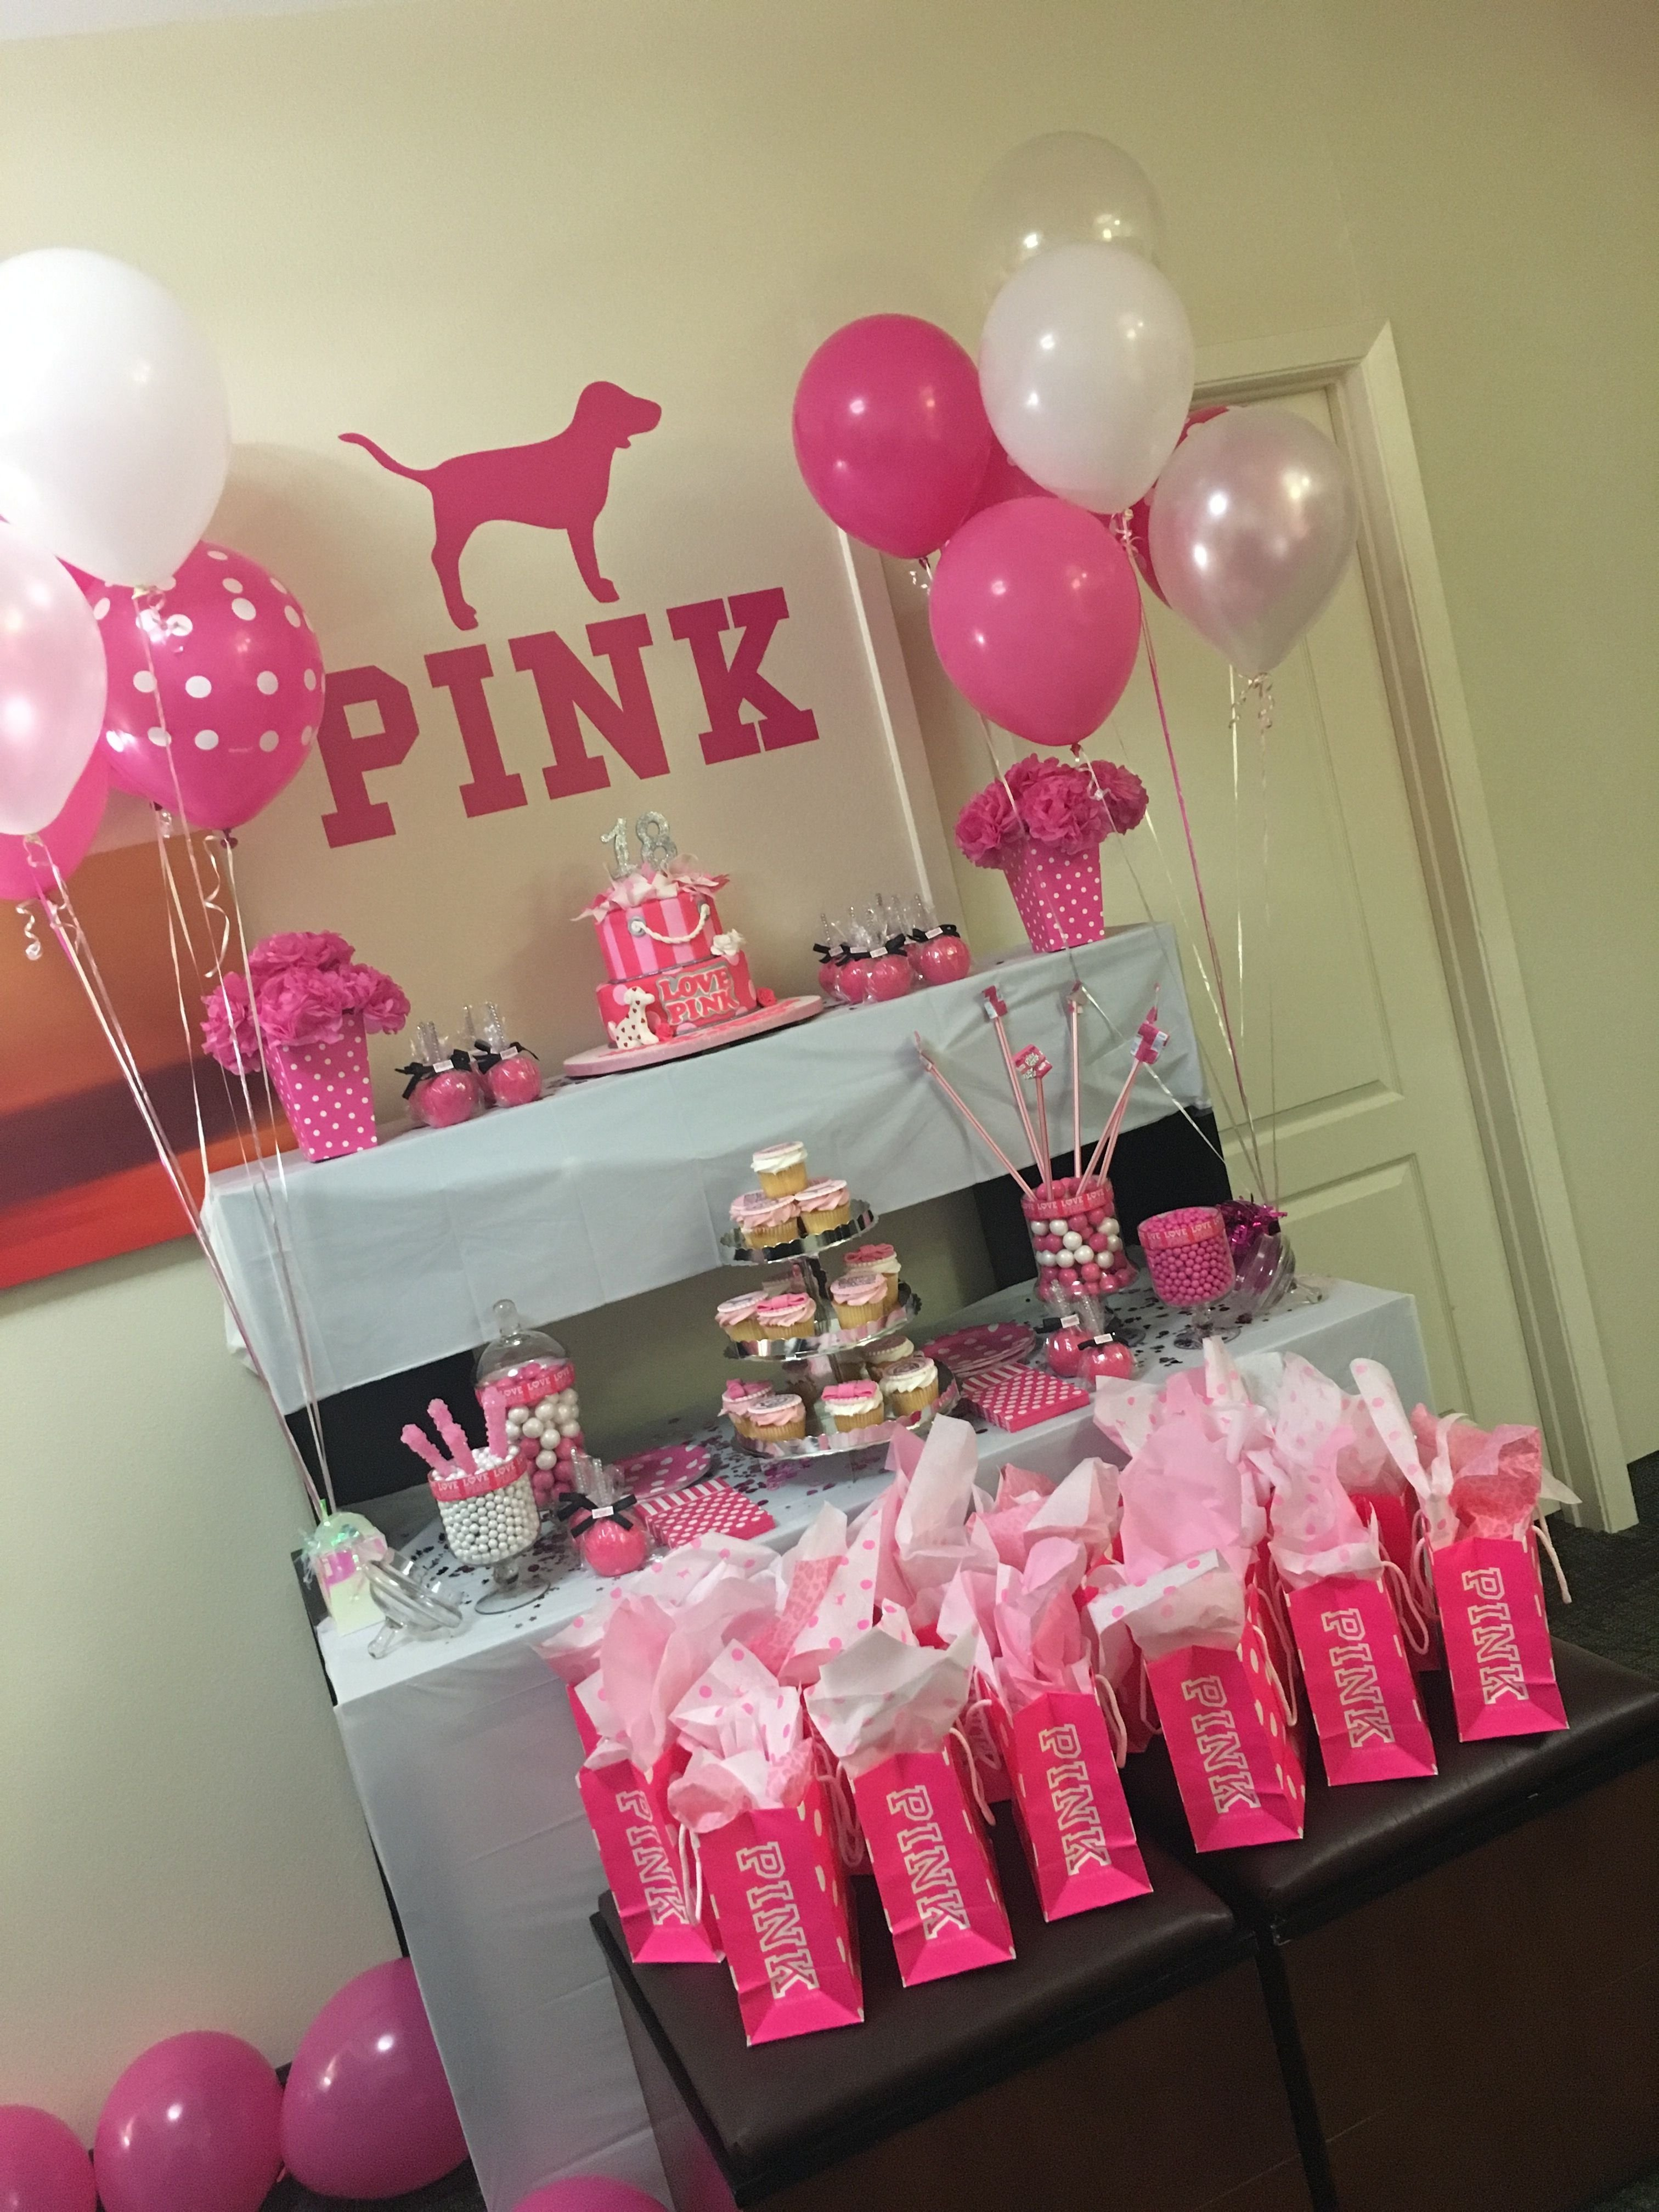 10 Elegant Ideas For A 13Th Birthday Party For A Girl pink party pinteres 13 2021